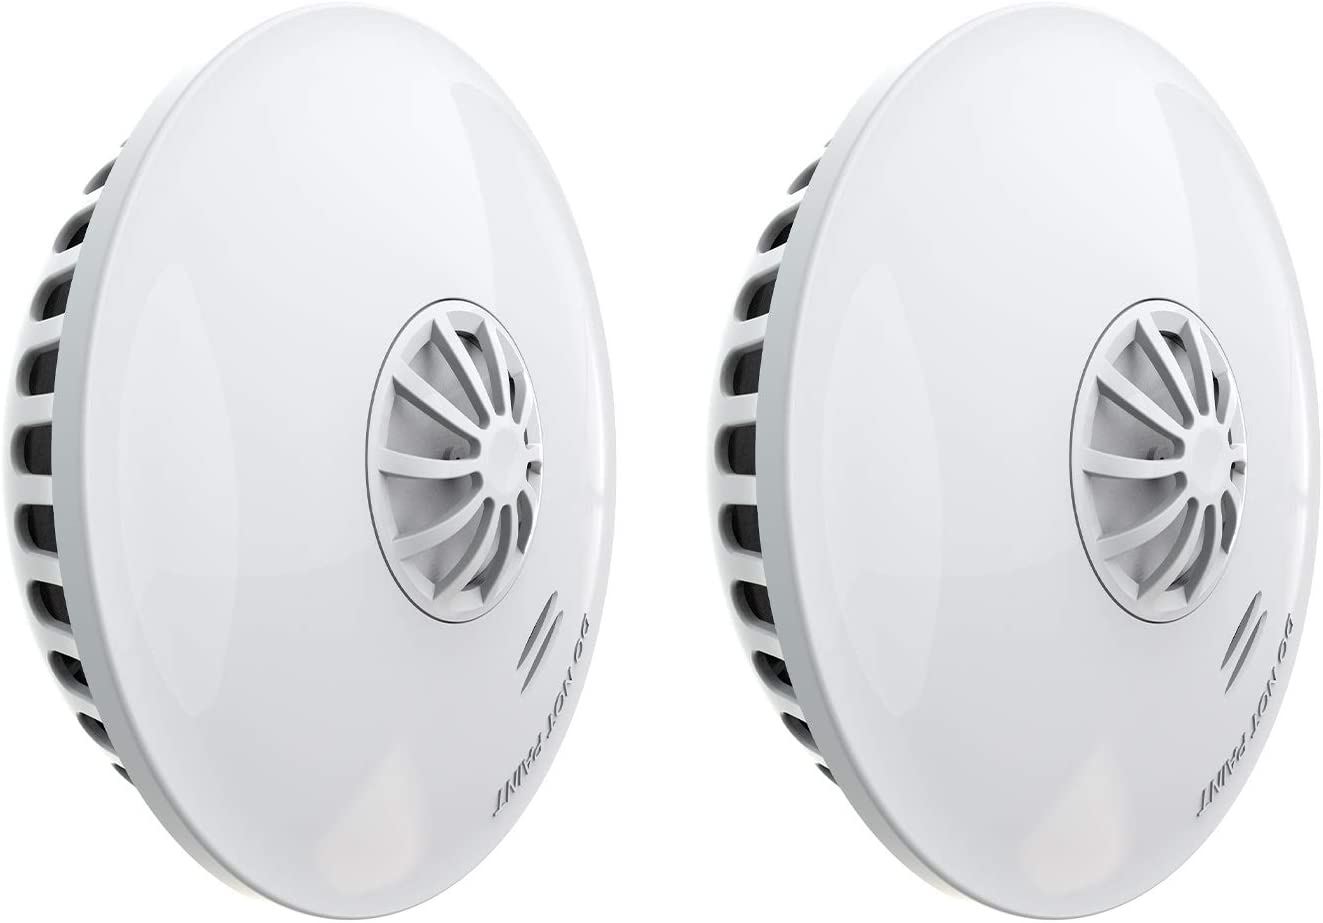 Ecoey Heat Smoke Detector Battery, Smoke and Heat Alarm with Test Button, 10 Year Battery for Home Bedroom and Kitchen, FJ192,2 Packs